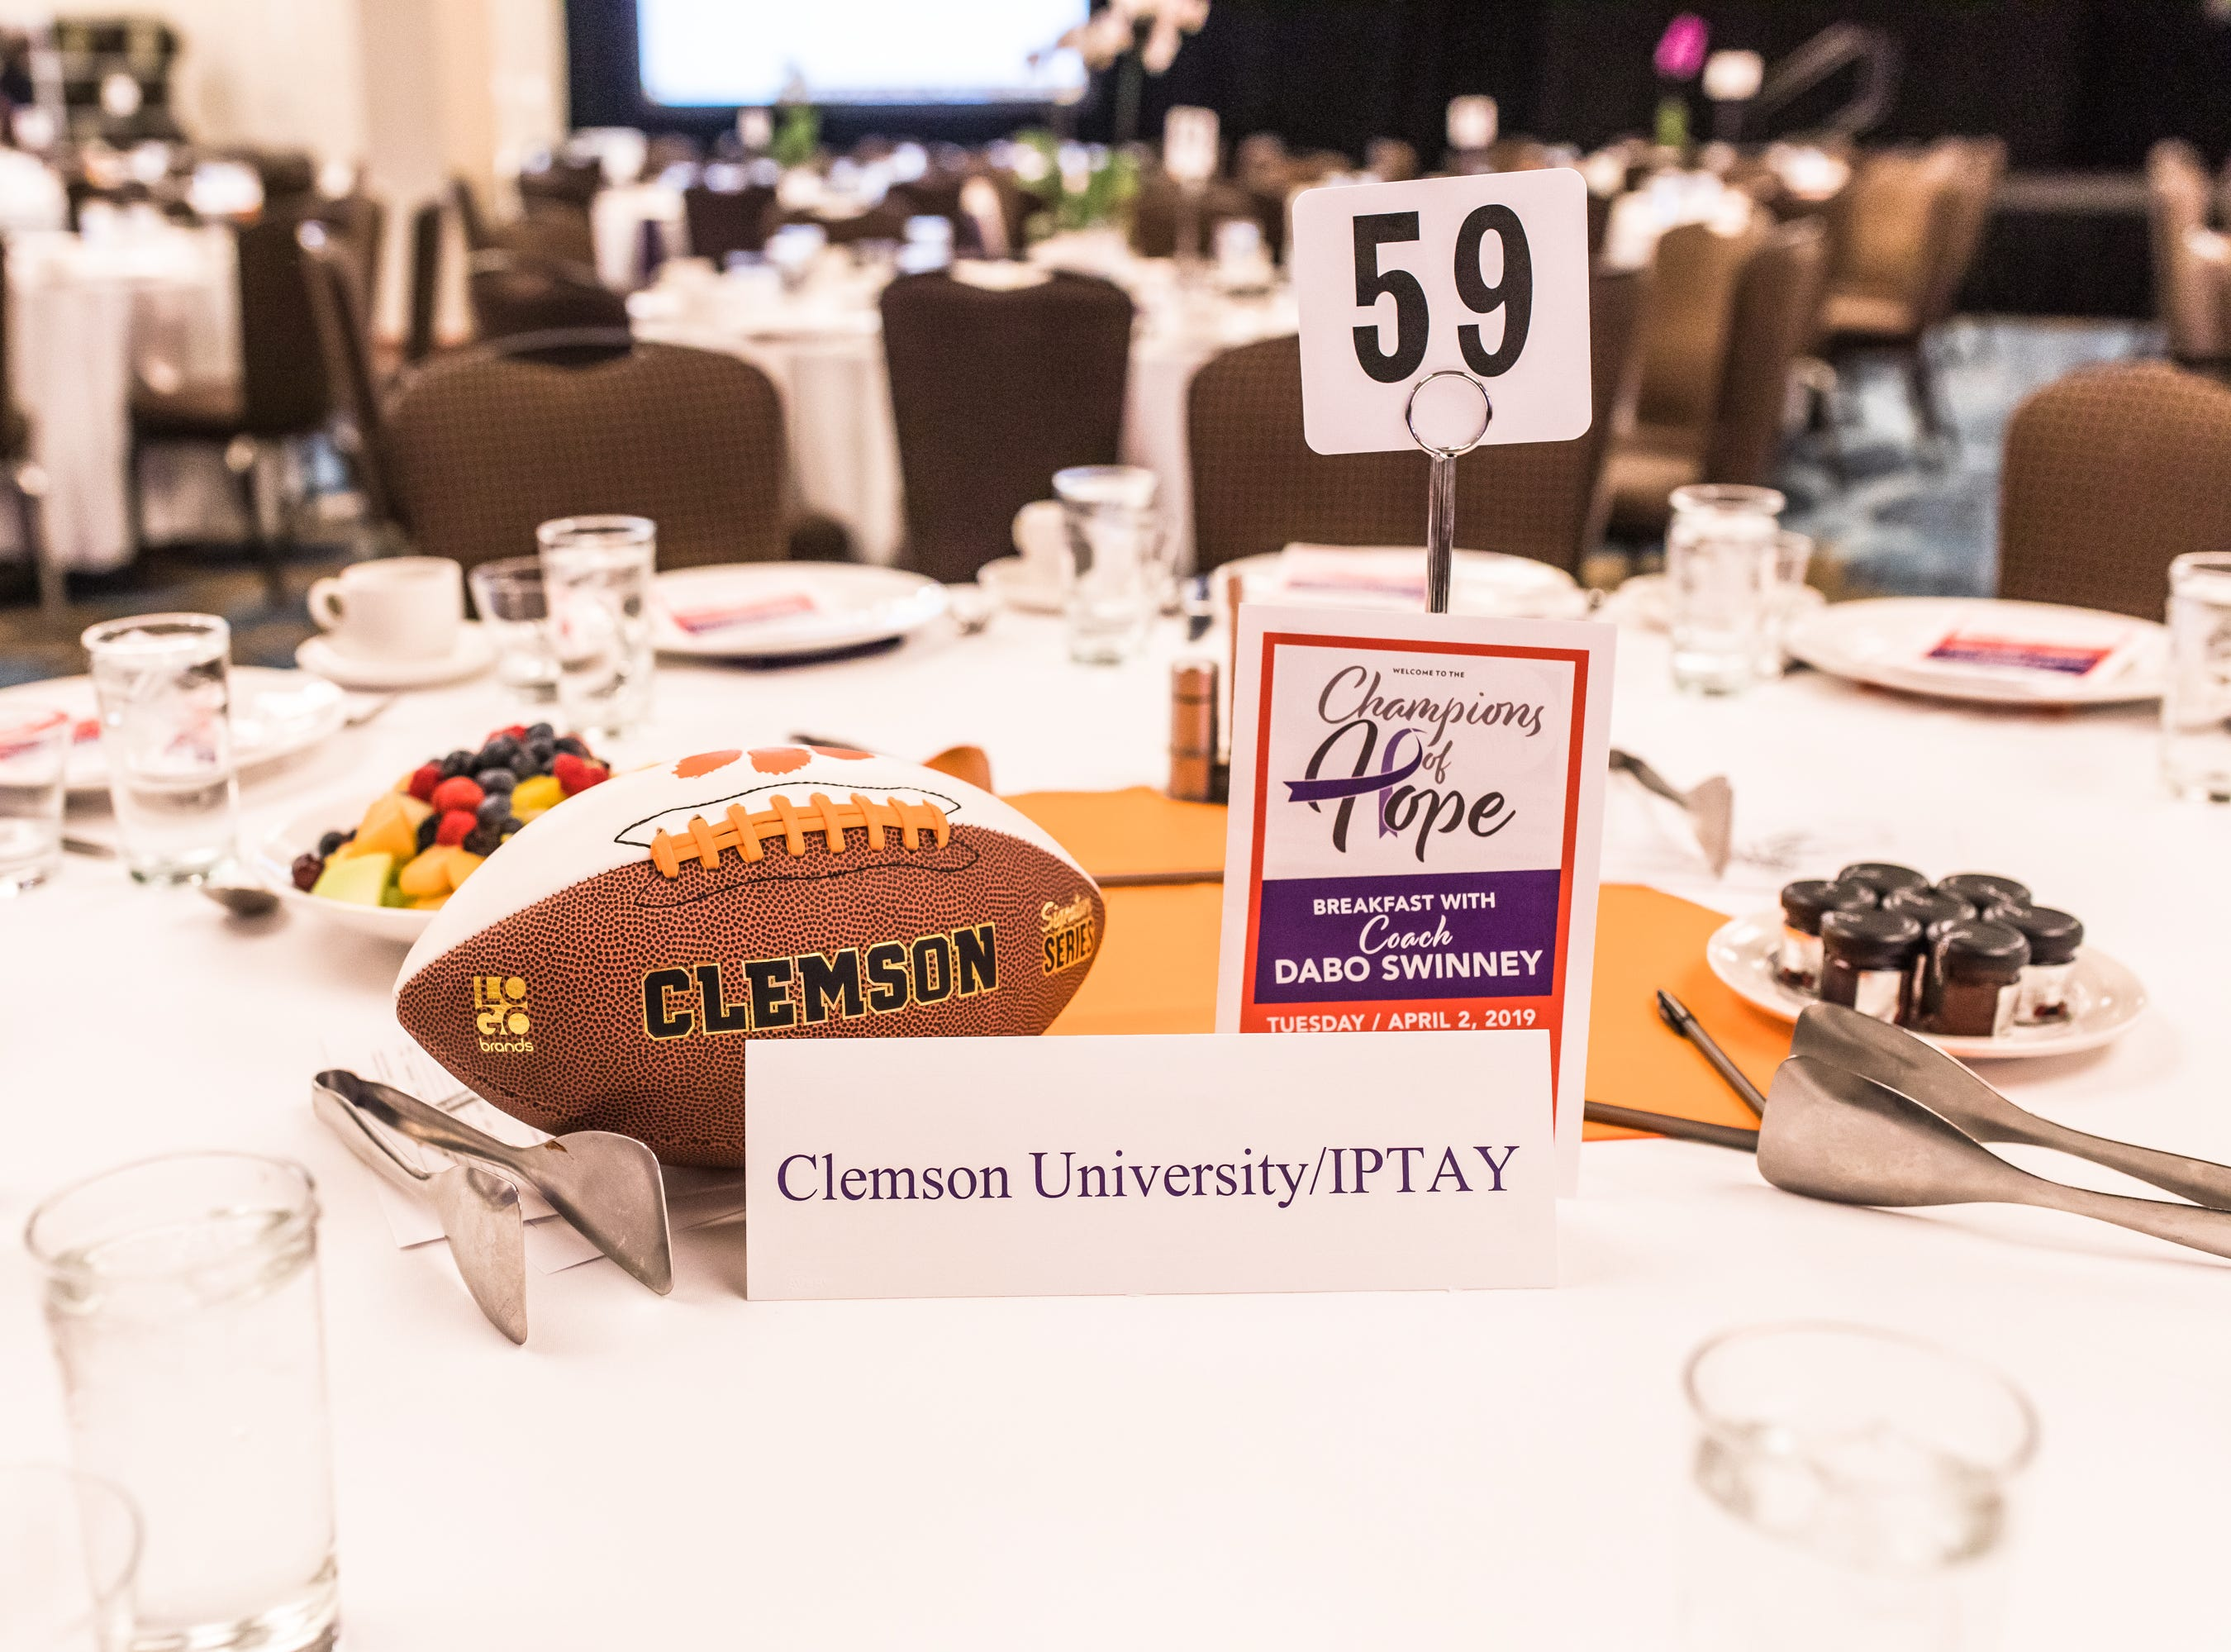 The Champions of Hope Breakfast was a special morning to benefit the Cancer Society of Greenville County. The event was held at the Downtown Hyatt and attendees enjoyed fellowship, a delicious breakfast and guest speaker, Dabo Swinney. Guests loved the rare opportunity to hear the Clemson Coaching Legend speak in person. Swinney shared the secrets of success that helped him lead the Tigers to not one, but two National Championships. It was an inspiring morning to help cancer patients across the Upstate.